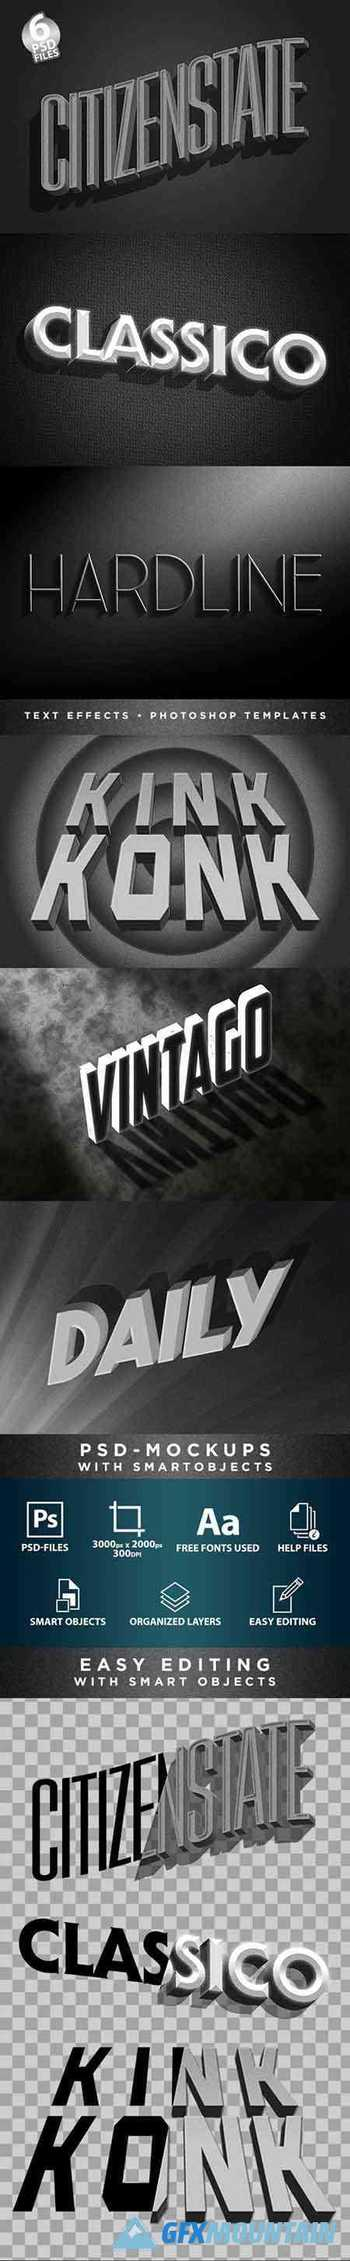 Classic Film Title Cards | 3D Text-Effects/Mockups | Template-Package 29828400